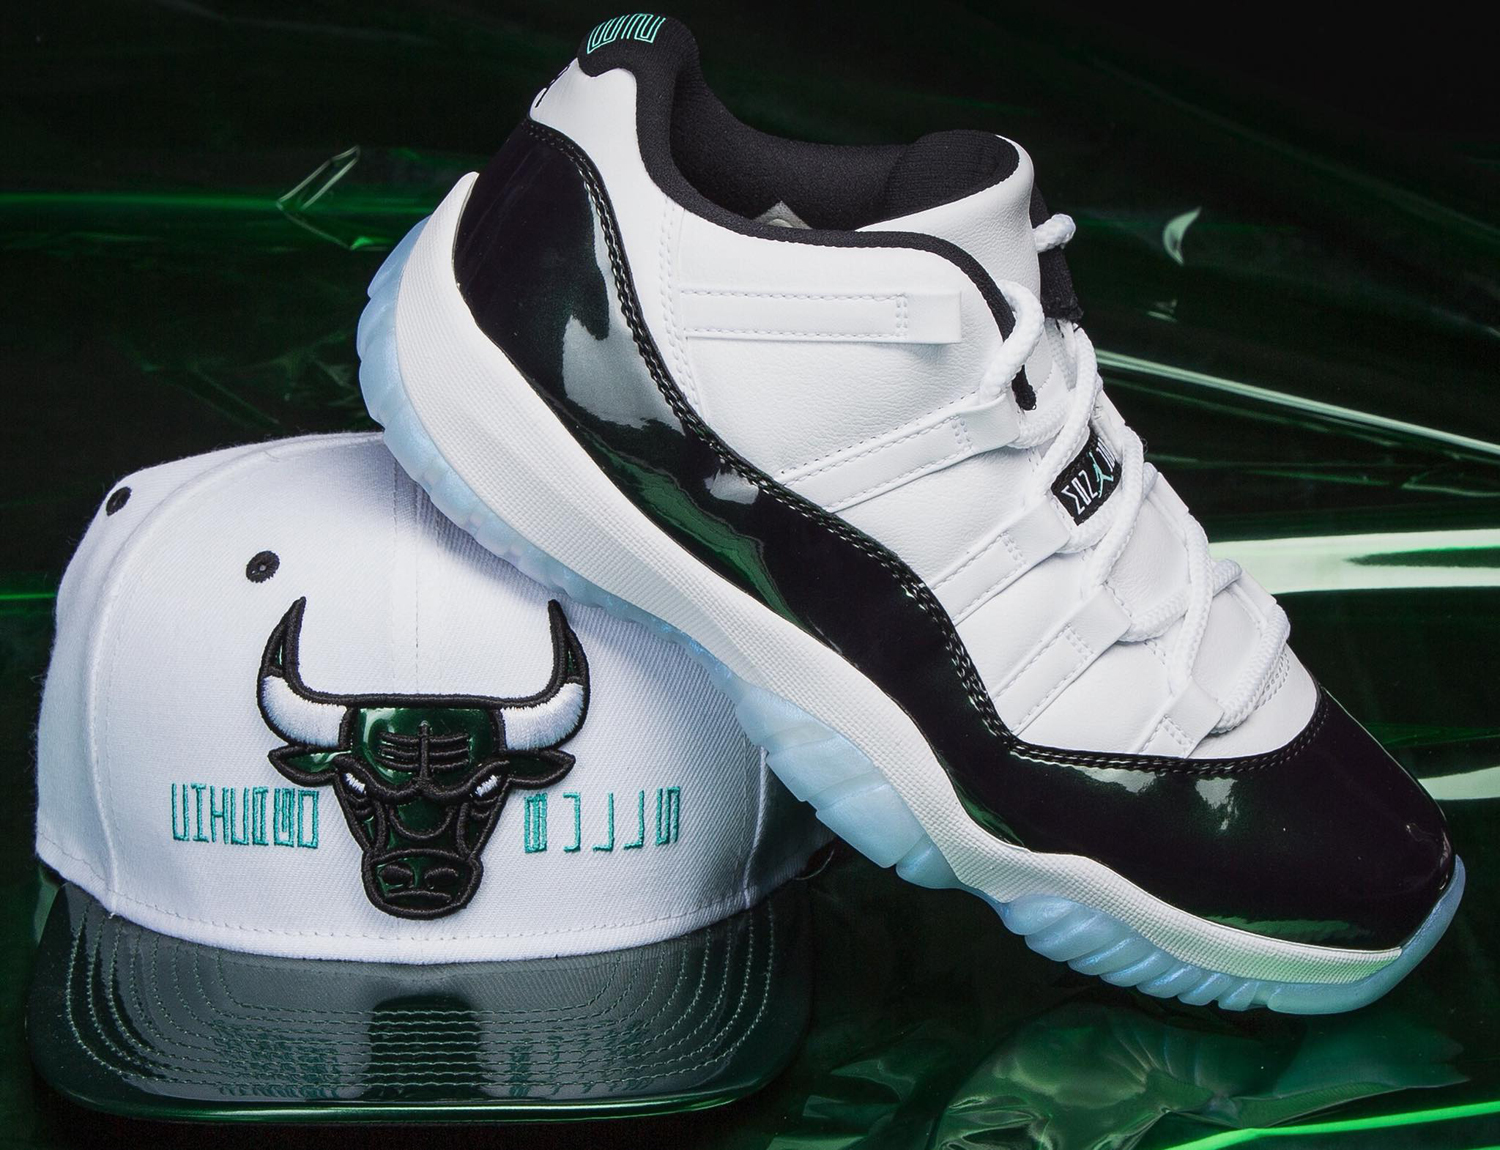 hats-to-match-jordan-11-low-easter-emerald